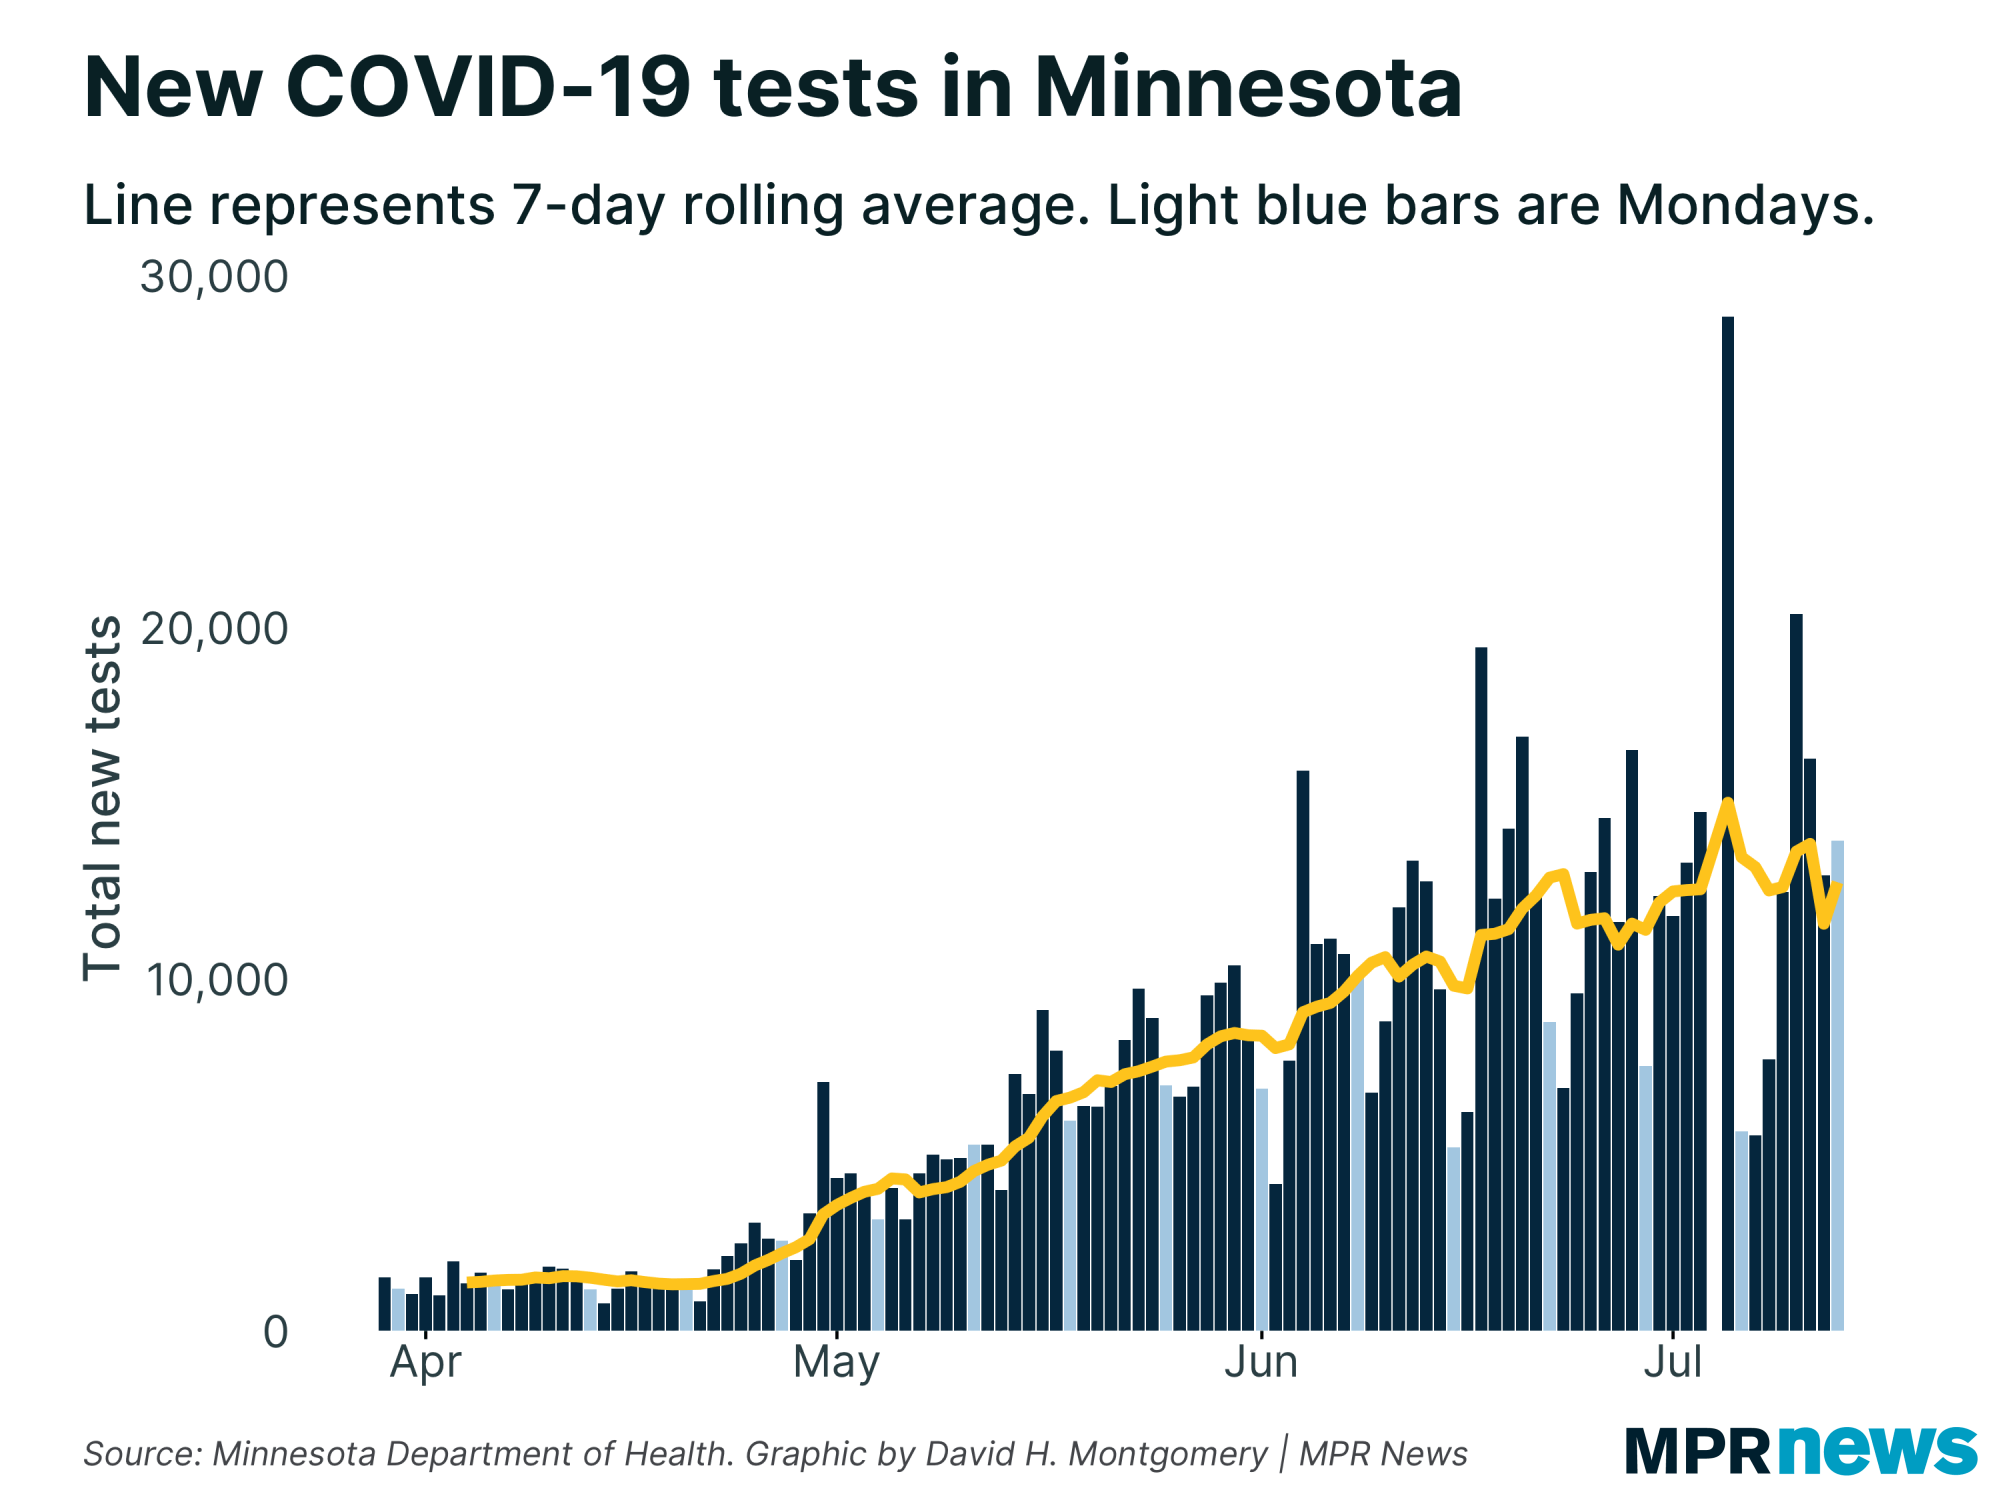 New COVID-19 tests conducted in Minnesota.